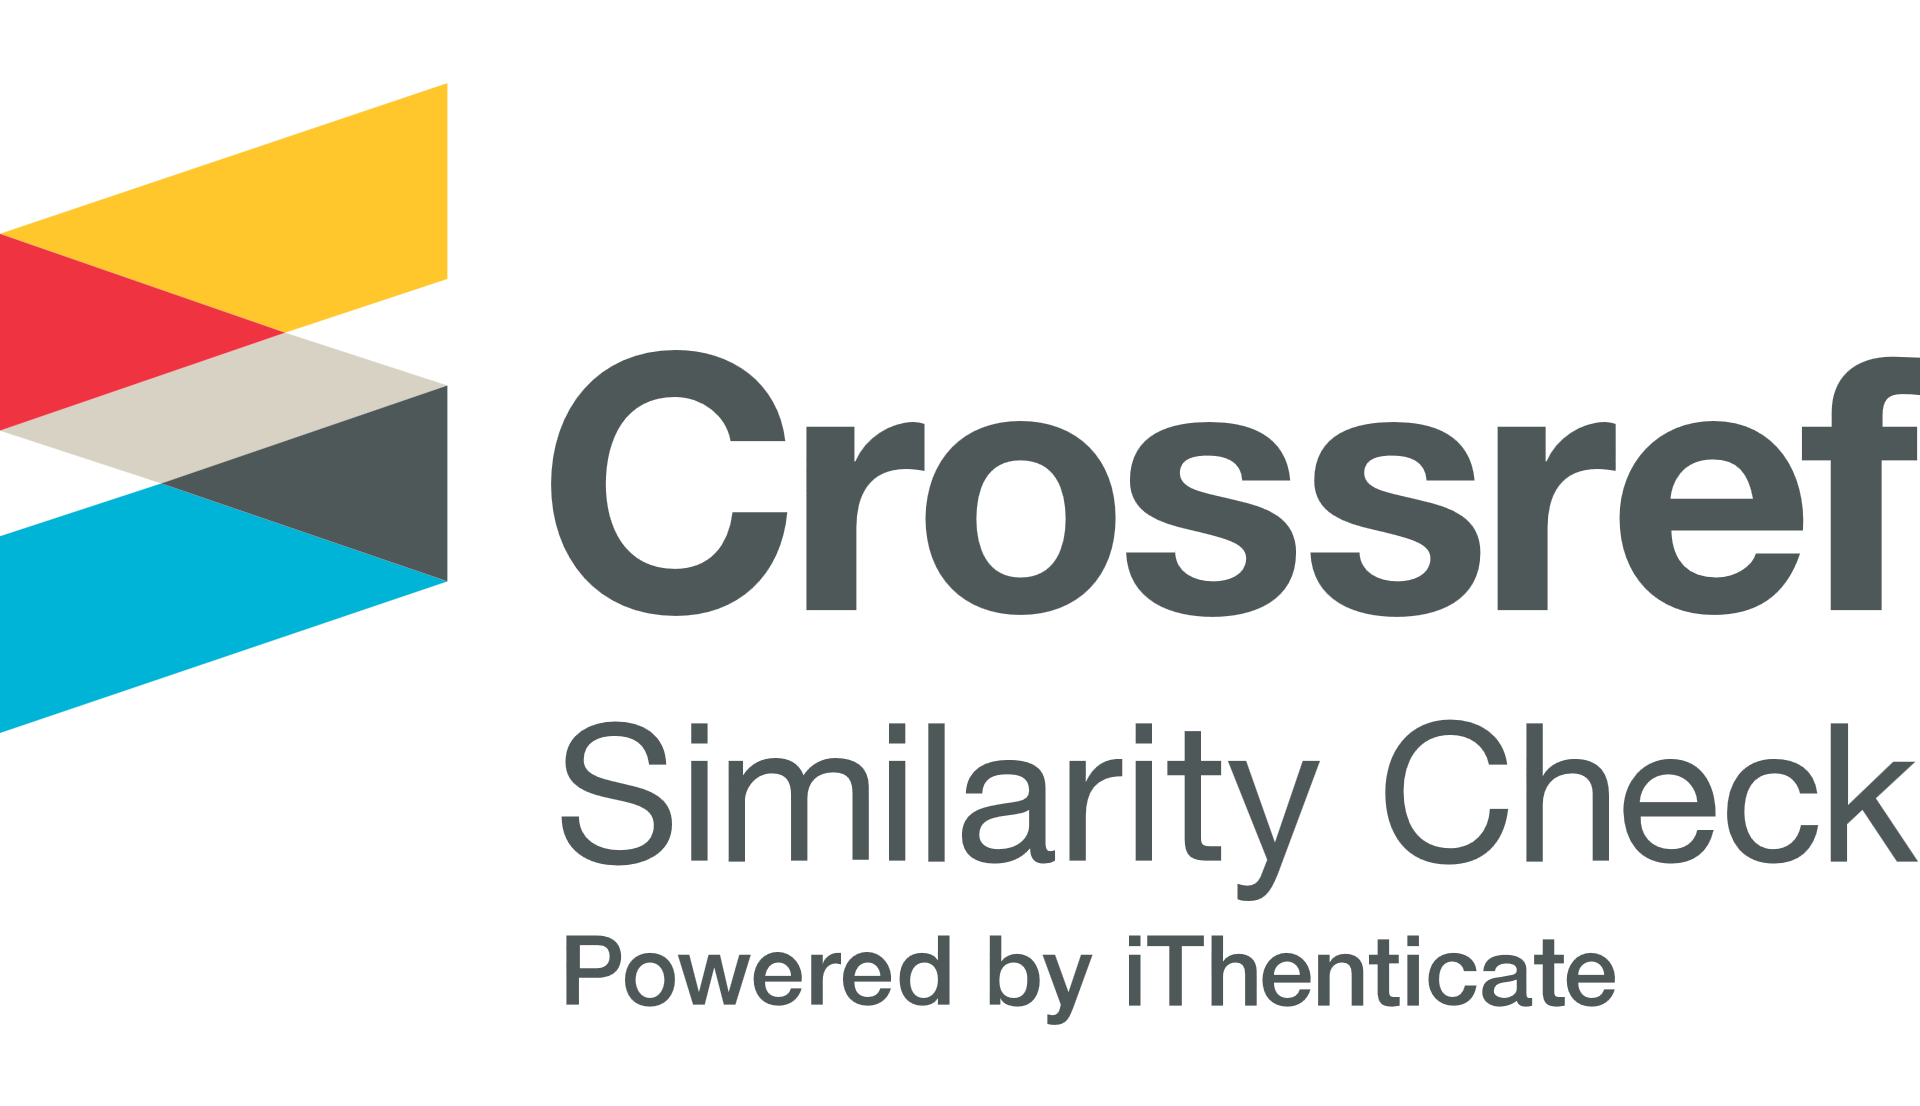 Crossref Similarity Check, Powered by iThenticate